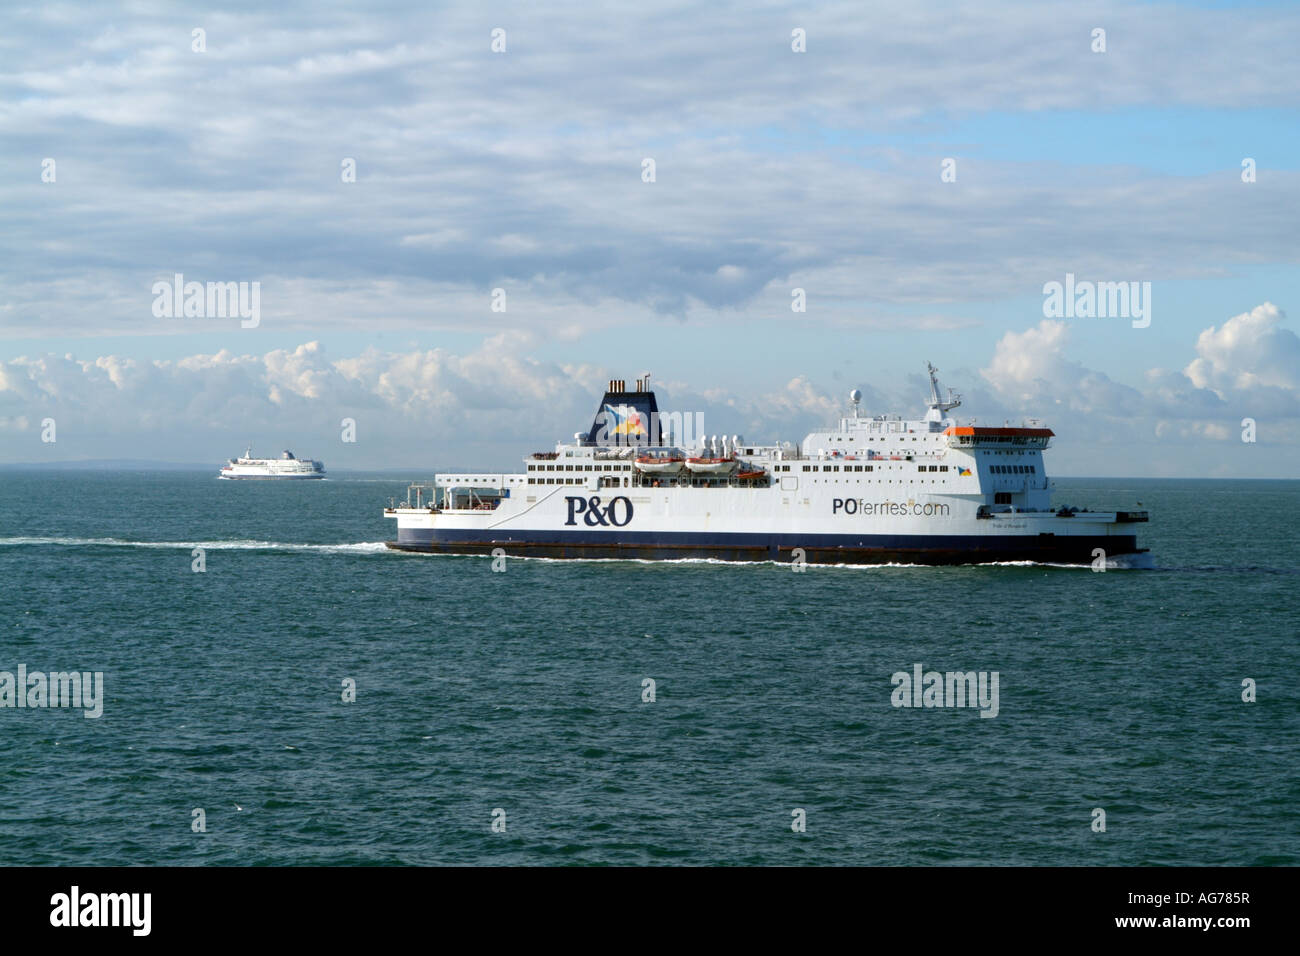 English Channel England Uk A Po Ferries Roro Cross Ferry Feryys Maroon Underway The Pride Of Burgundy